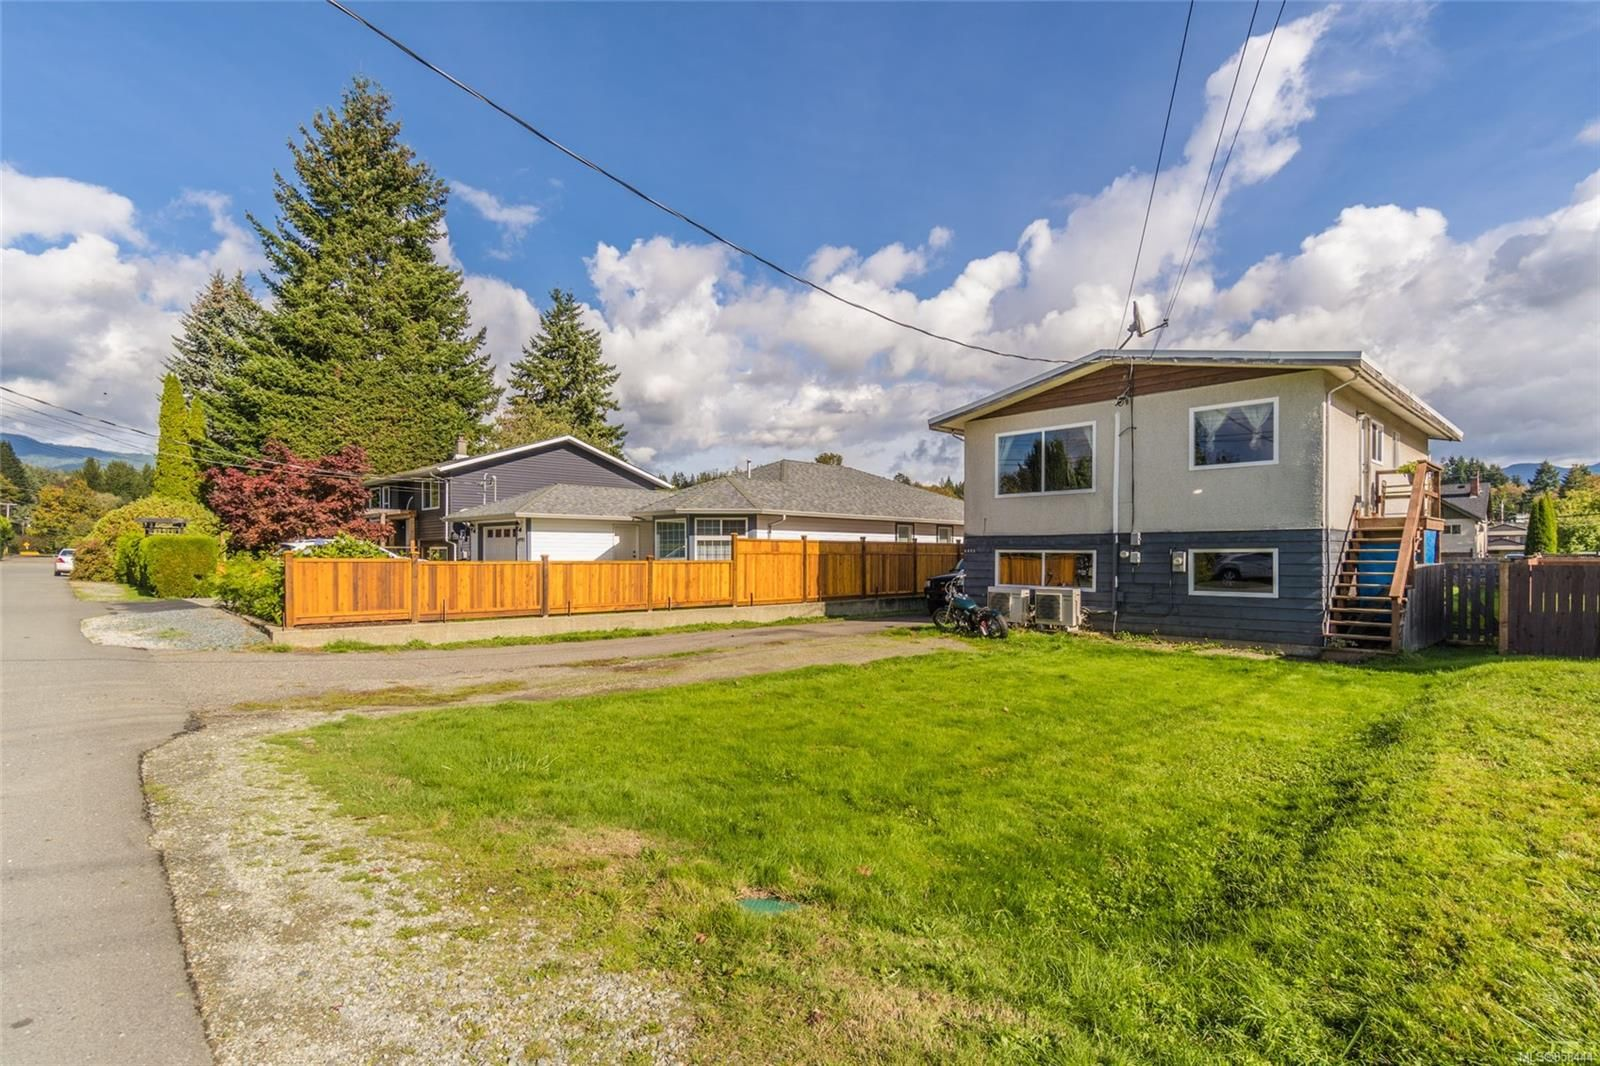 Main Photo: 4971 Margaret St in : PA Port Alberni House for sale (Port Alberni)  : MLS®# 858444